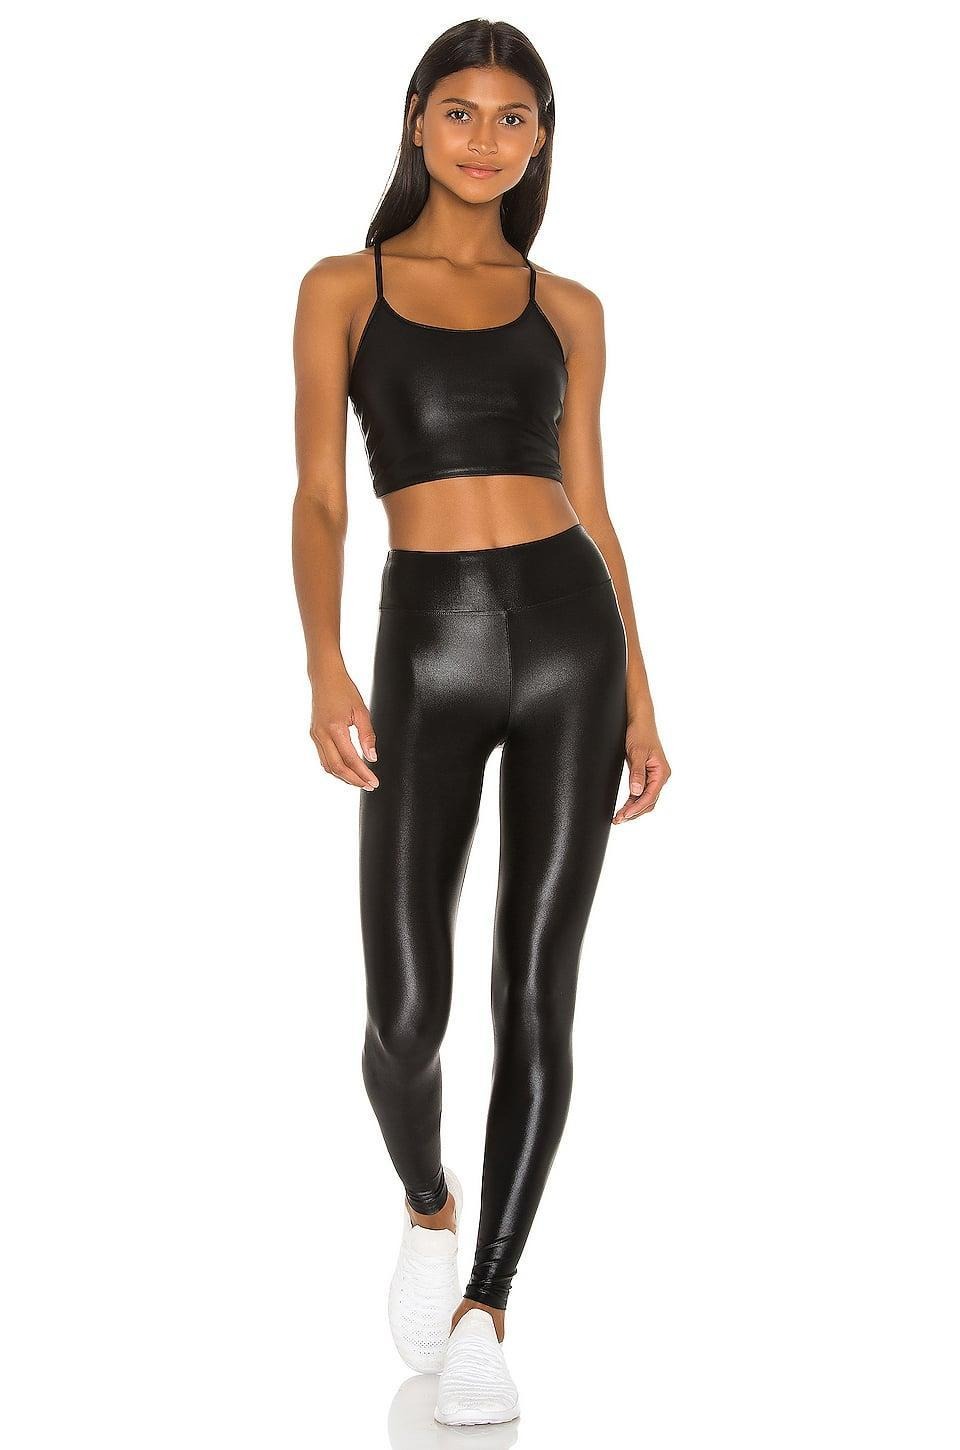 <p>This shiny <span>Koral Leah Infinity Sports Bra</span> ($65) and <span>Lustrous High Rise Legging</span> ($80) looks so good on. If you're working up a sweat, like in a hot yoga or boxing class, grab this set.</p>